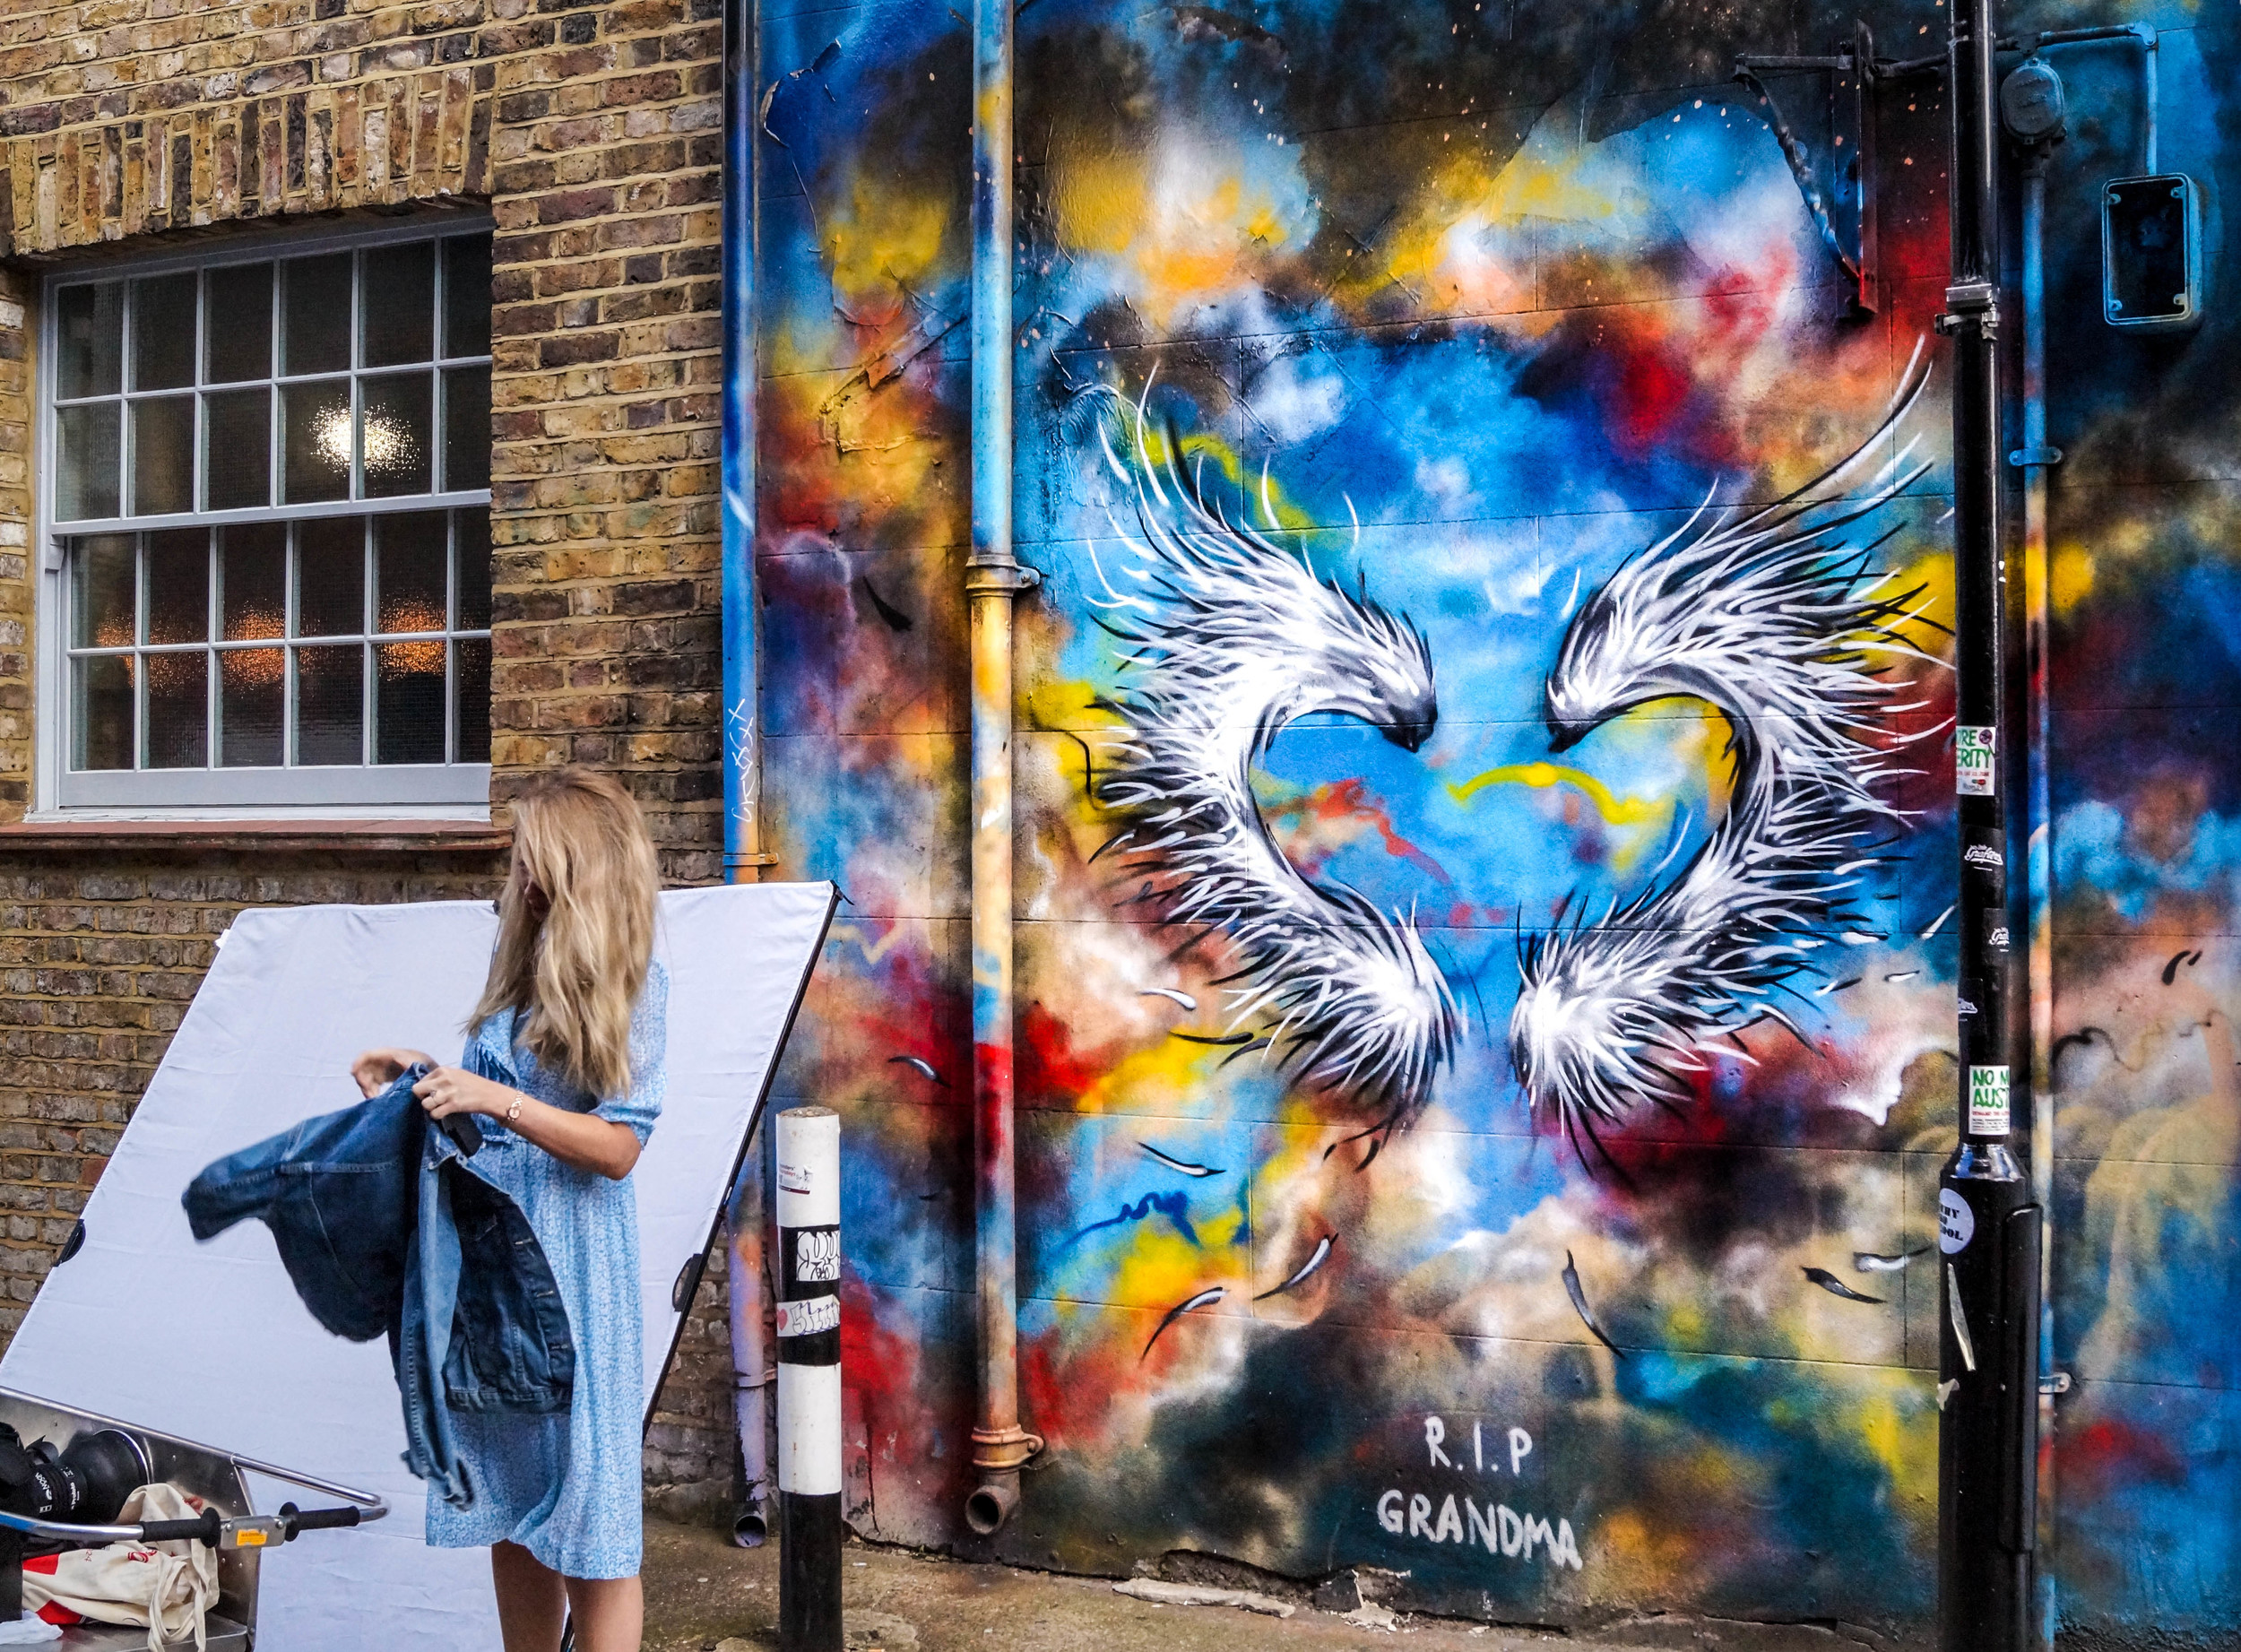 Brick Lane Art